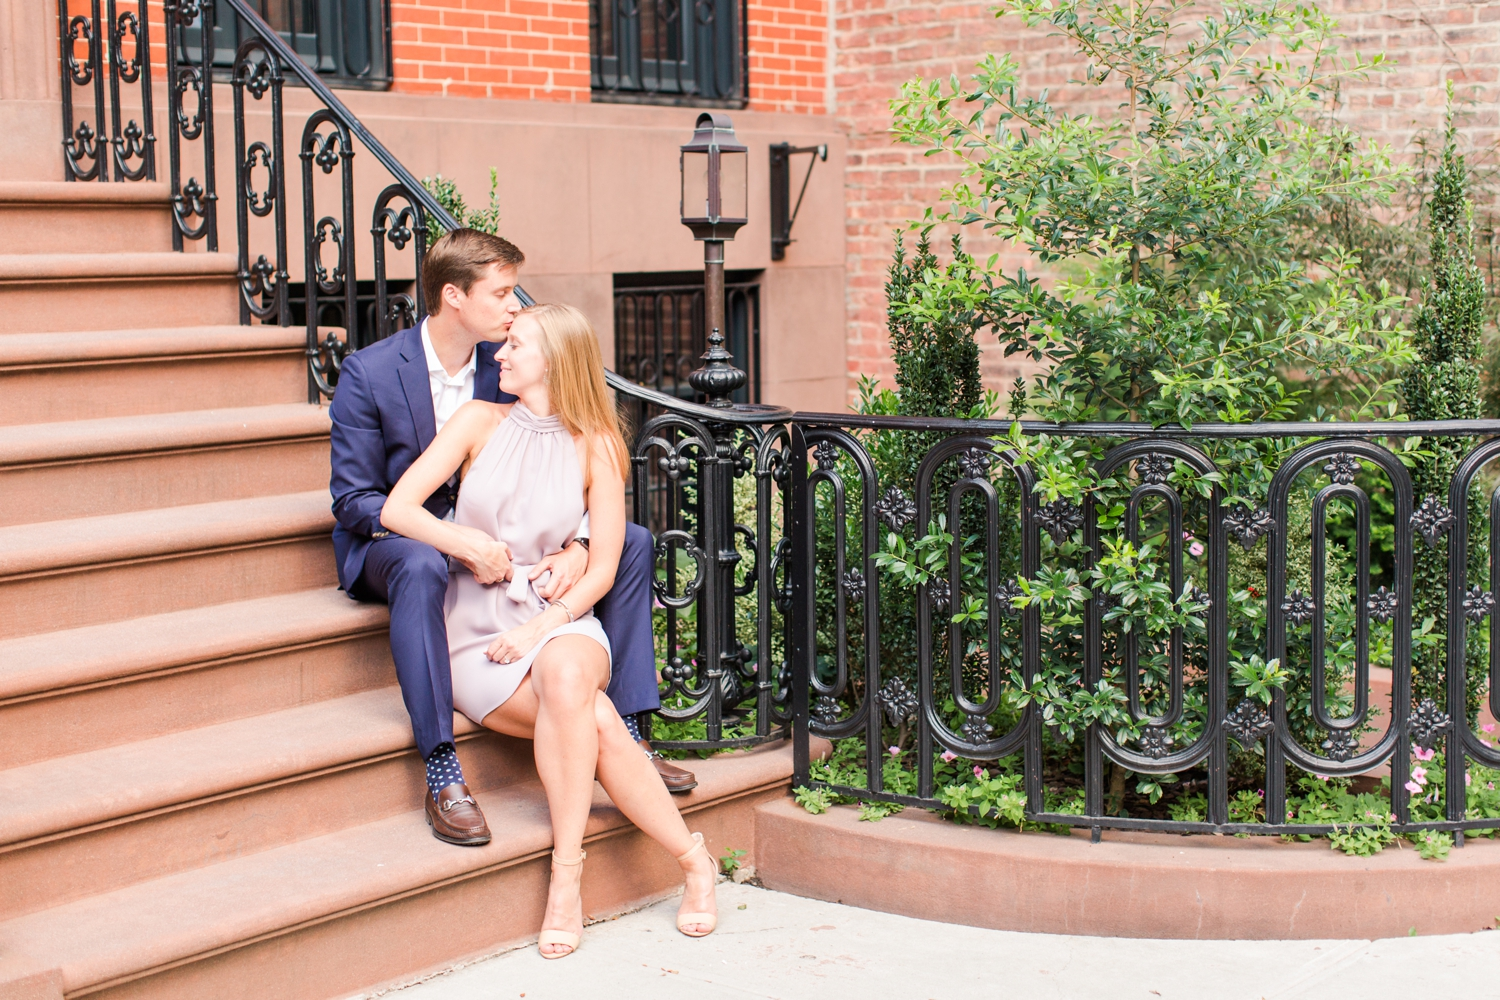 west-village-engagement-session-nyc-wedding-photographer-shaina-lee-photography-photo-24.jpg